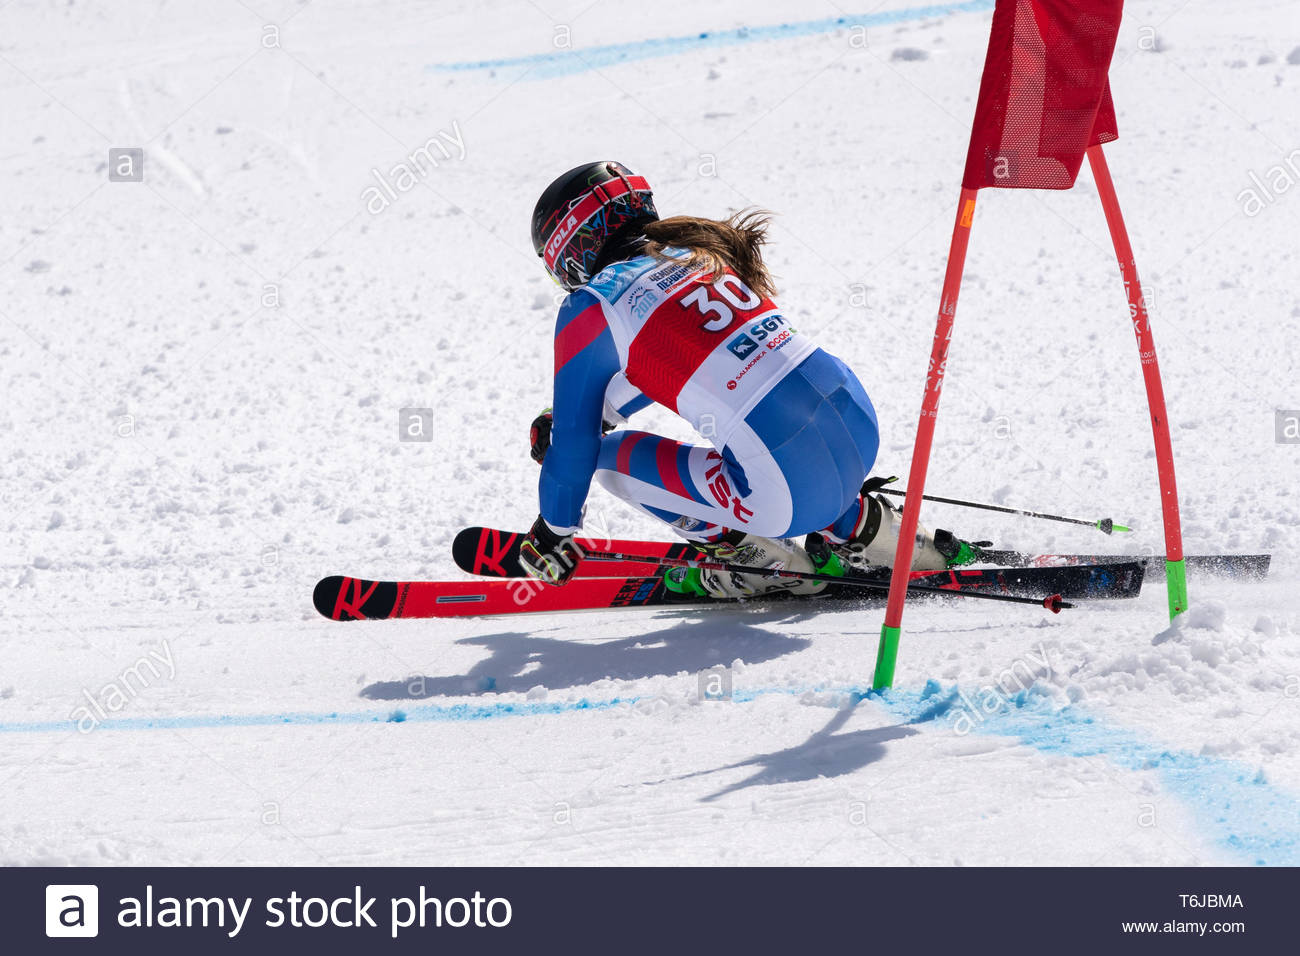 KAMCHATKA PENINSULA, RUSSIAN FEDERATION - APRIL 1, 2019: Mountain skier Ulyana Lendya (Kamchatka Region) skiing down snowy mountain slope. Russian Wom - Stock Image